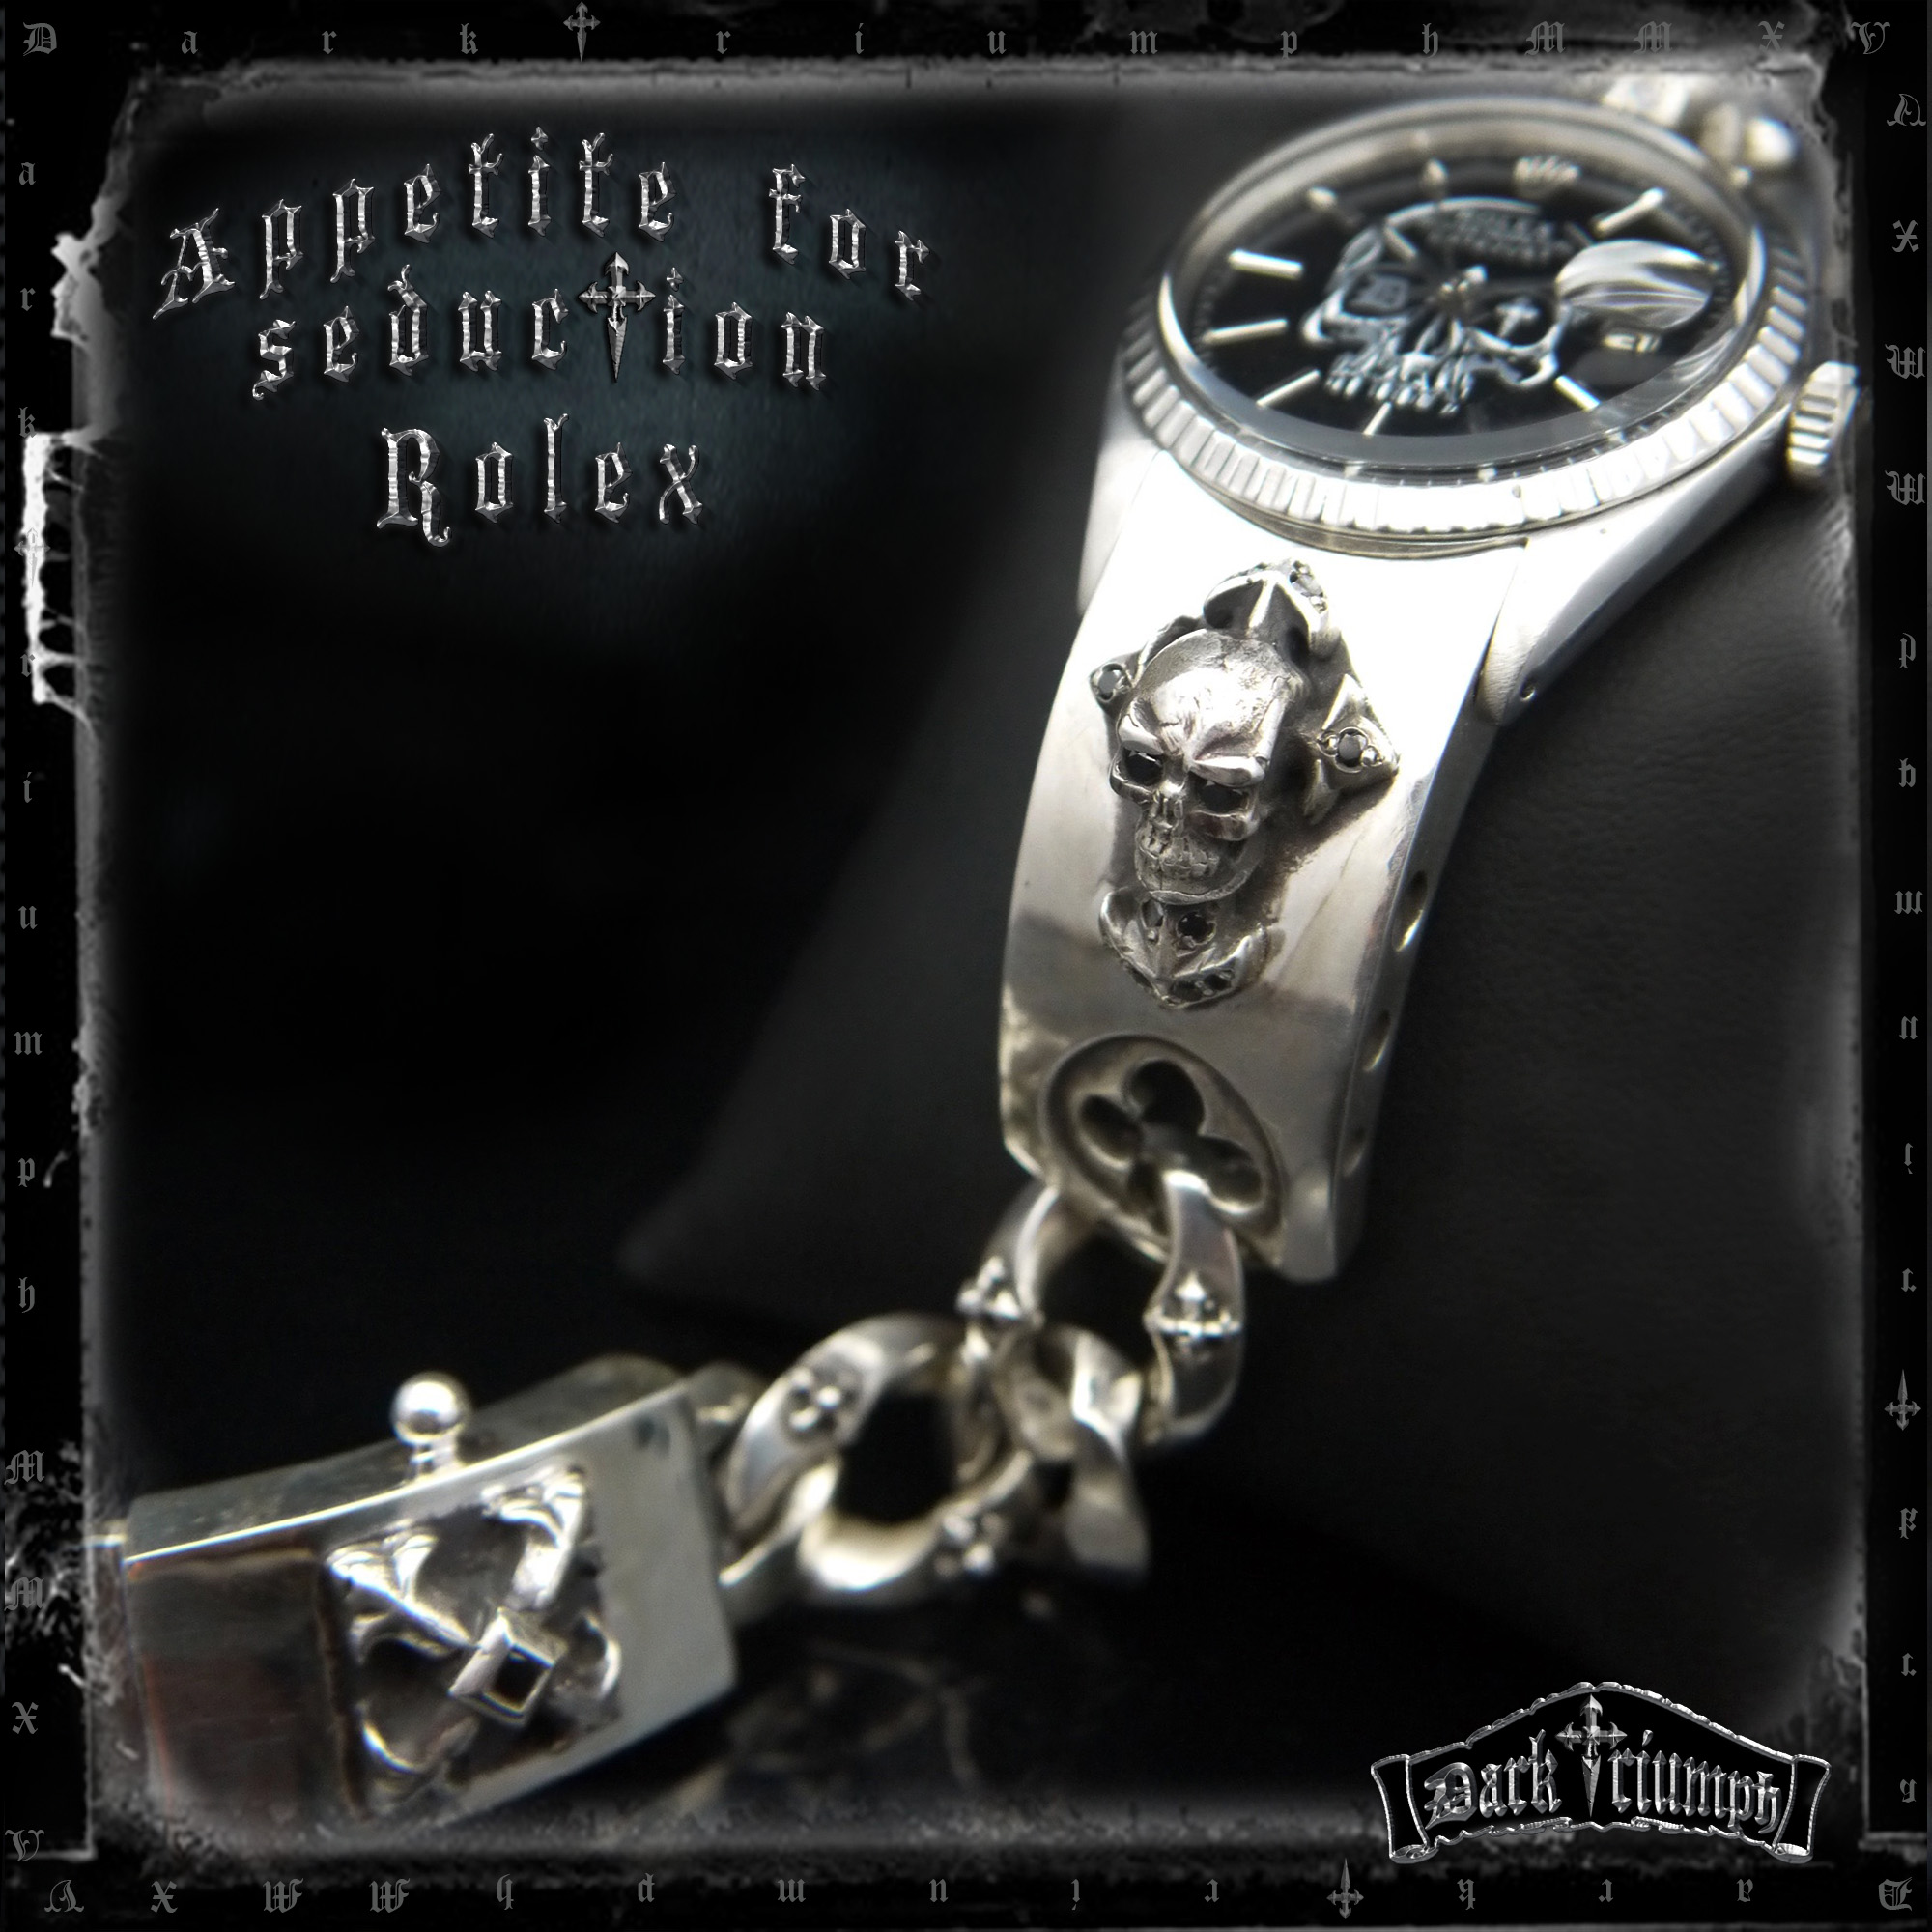 appetite-for-seduction-relic-rolex-titled.jpg